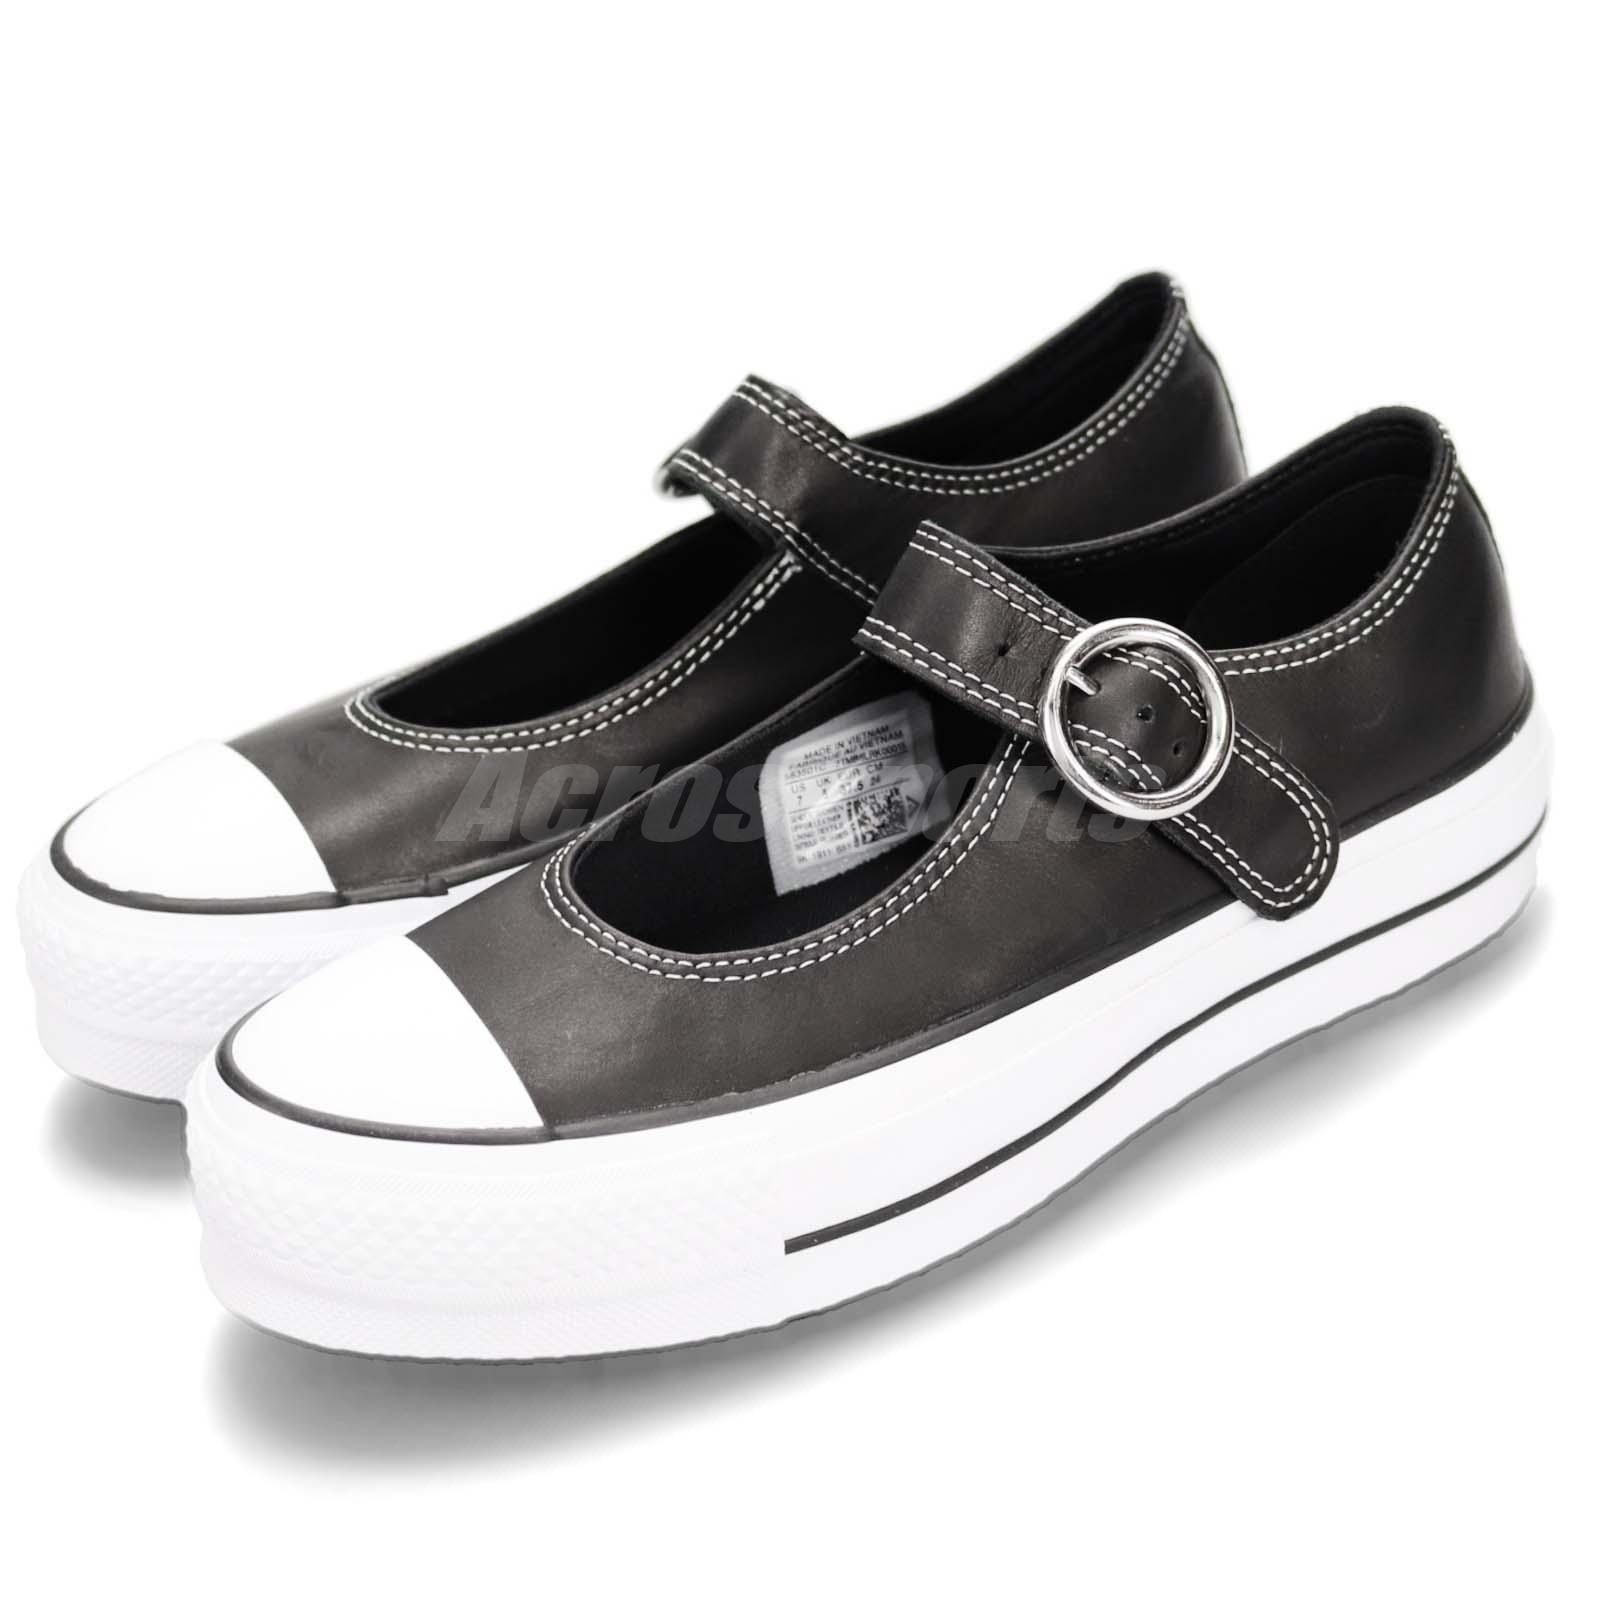 Responsible Boc Womens Mary Jane Shoes Size 7 Black Comfort Shoes Clothing, Shoes & Accessories